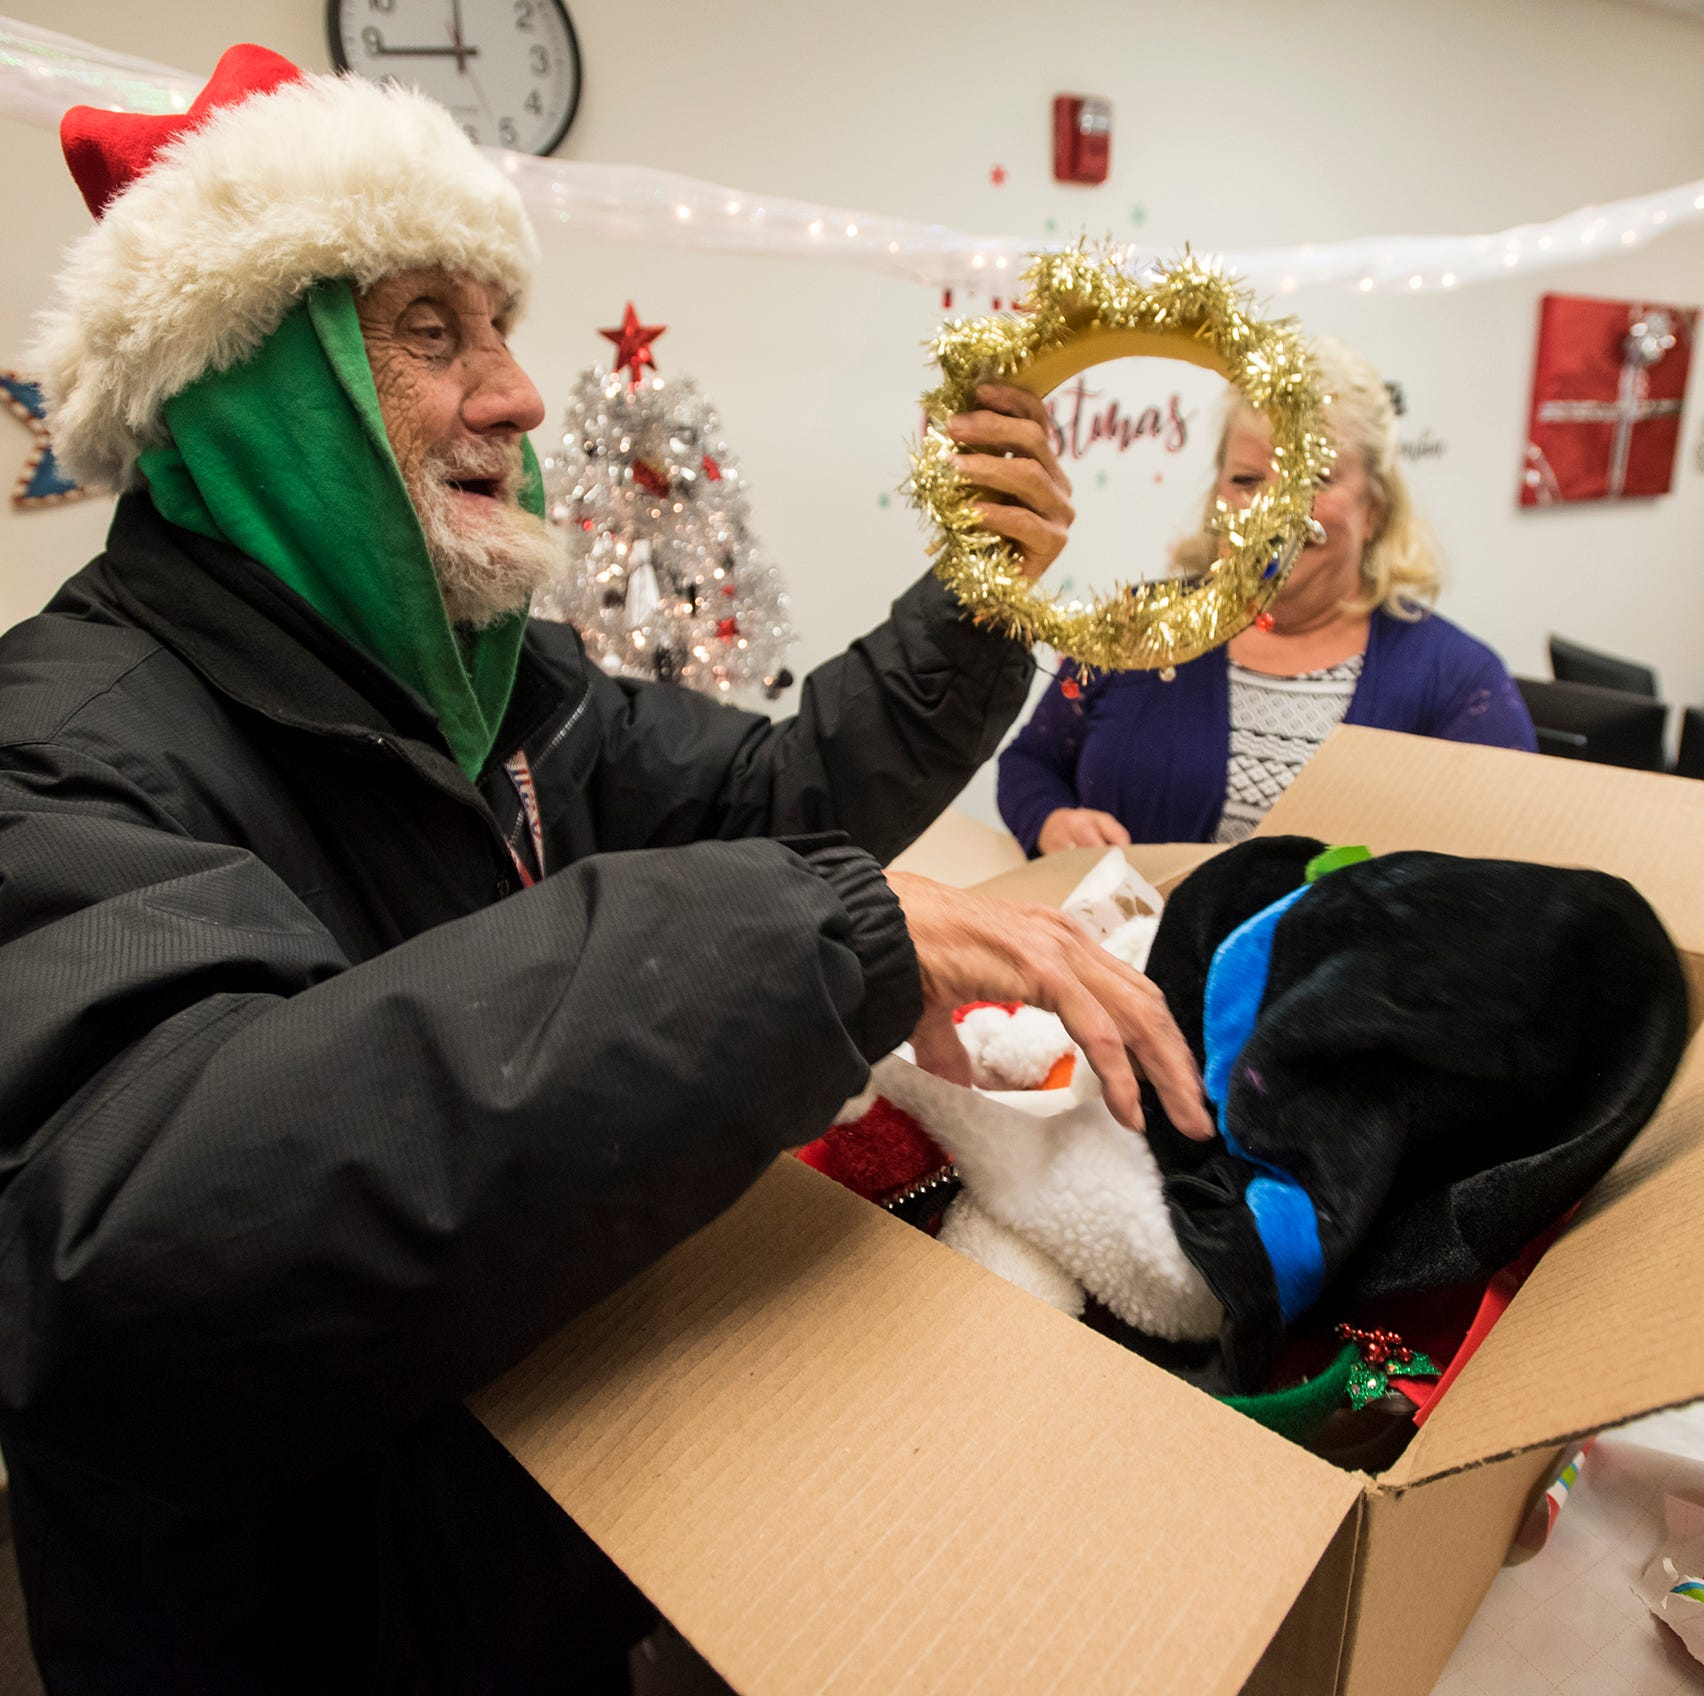 Port Huron's 'Spoonman' gets an early Christmas present